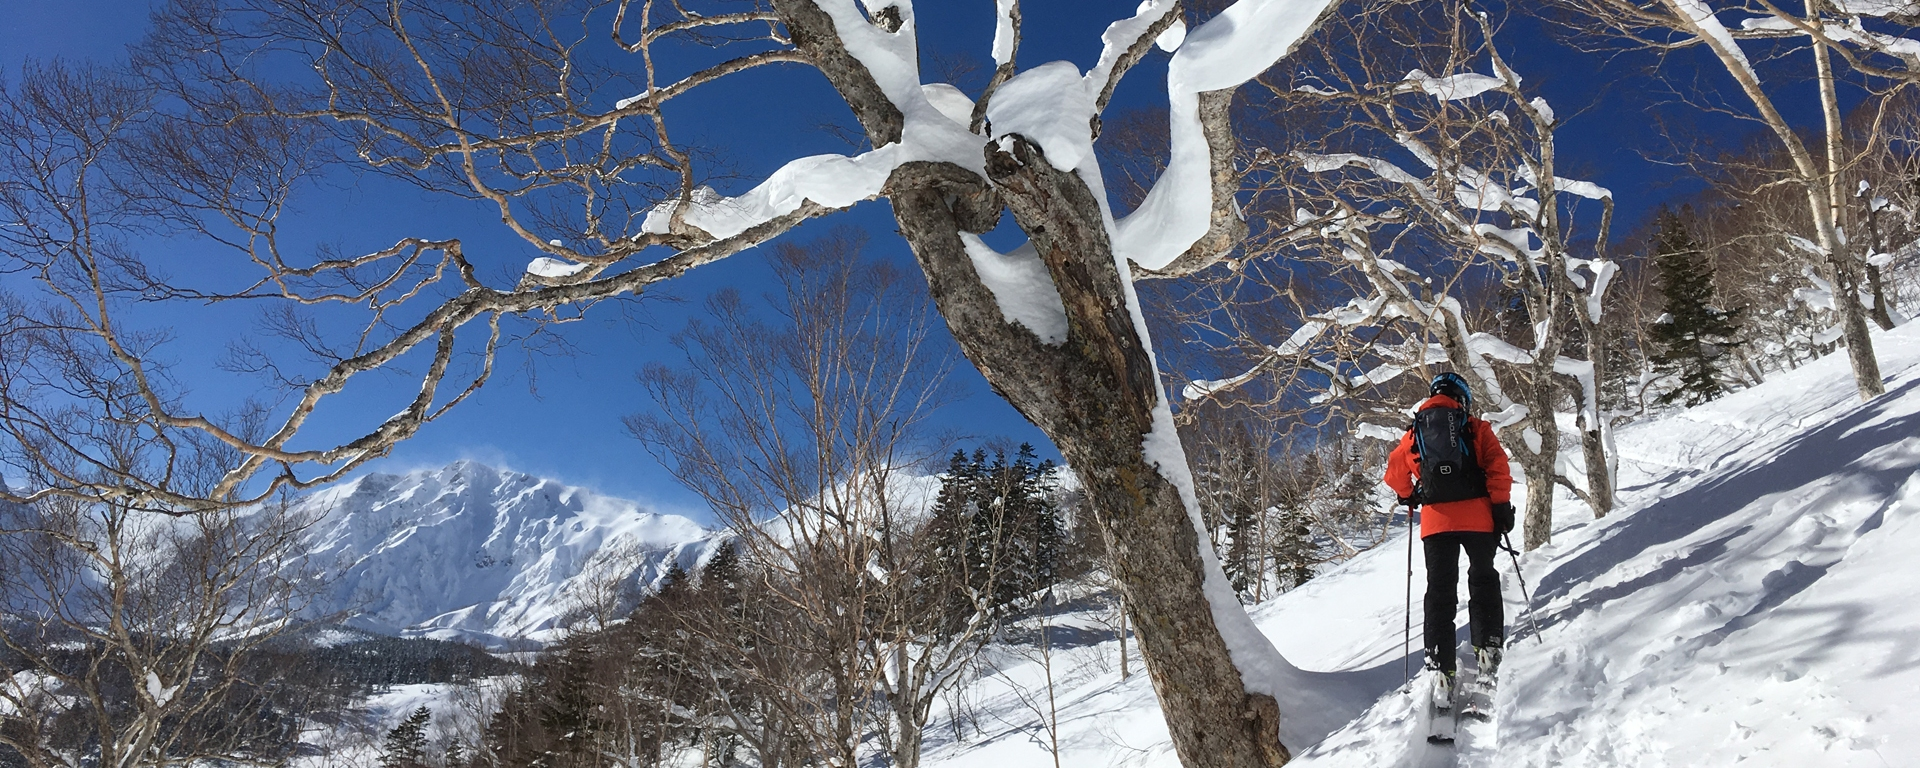 Tsugaike Backcountry